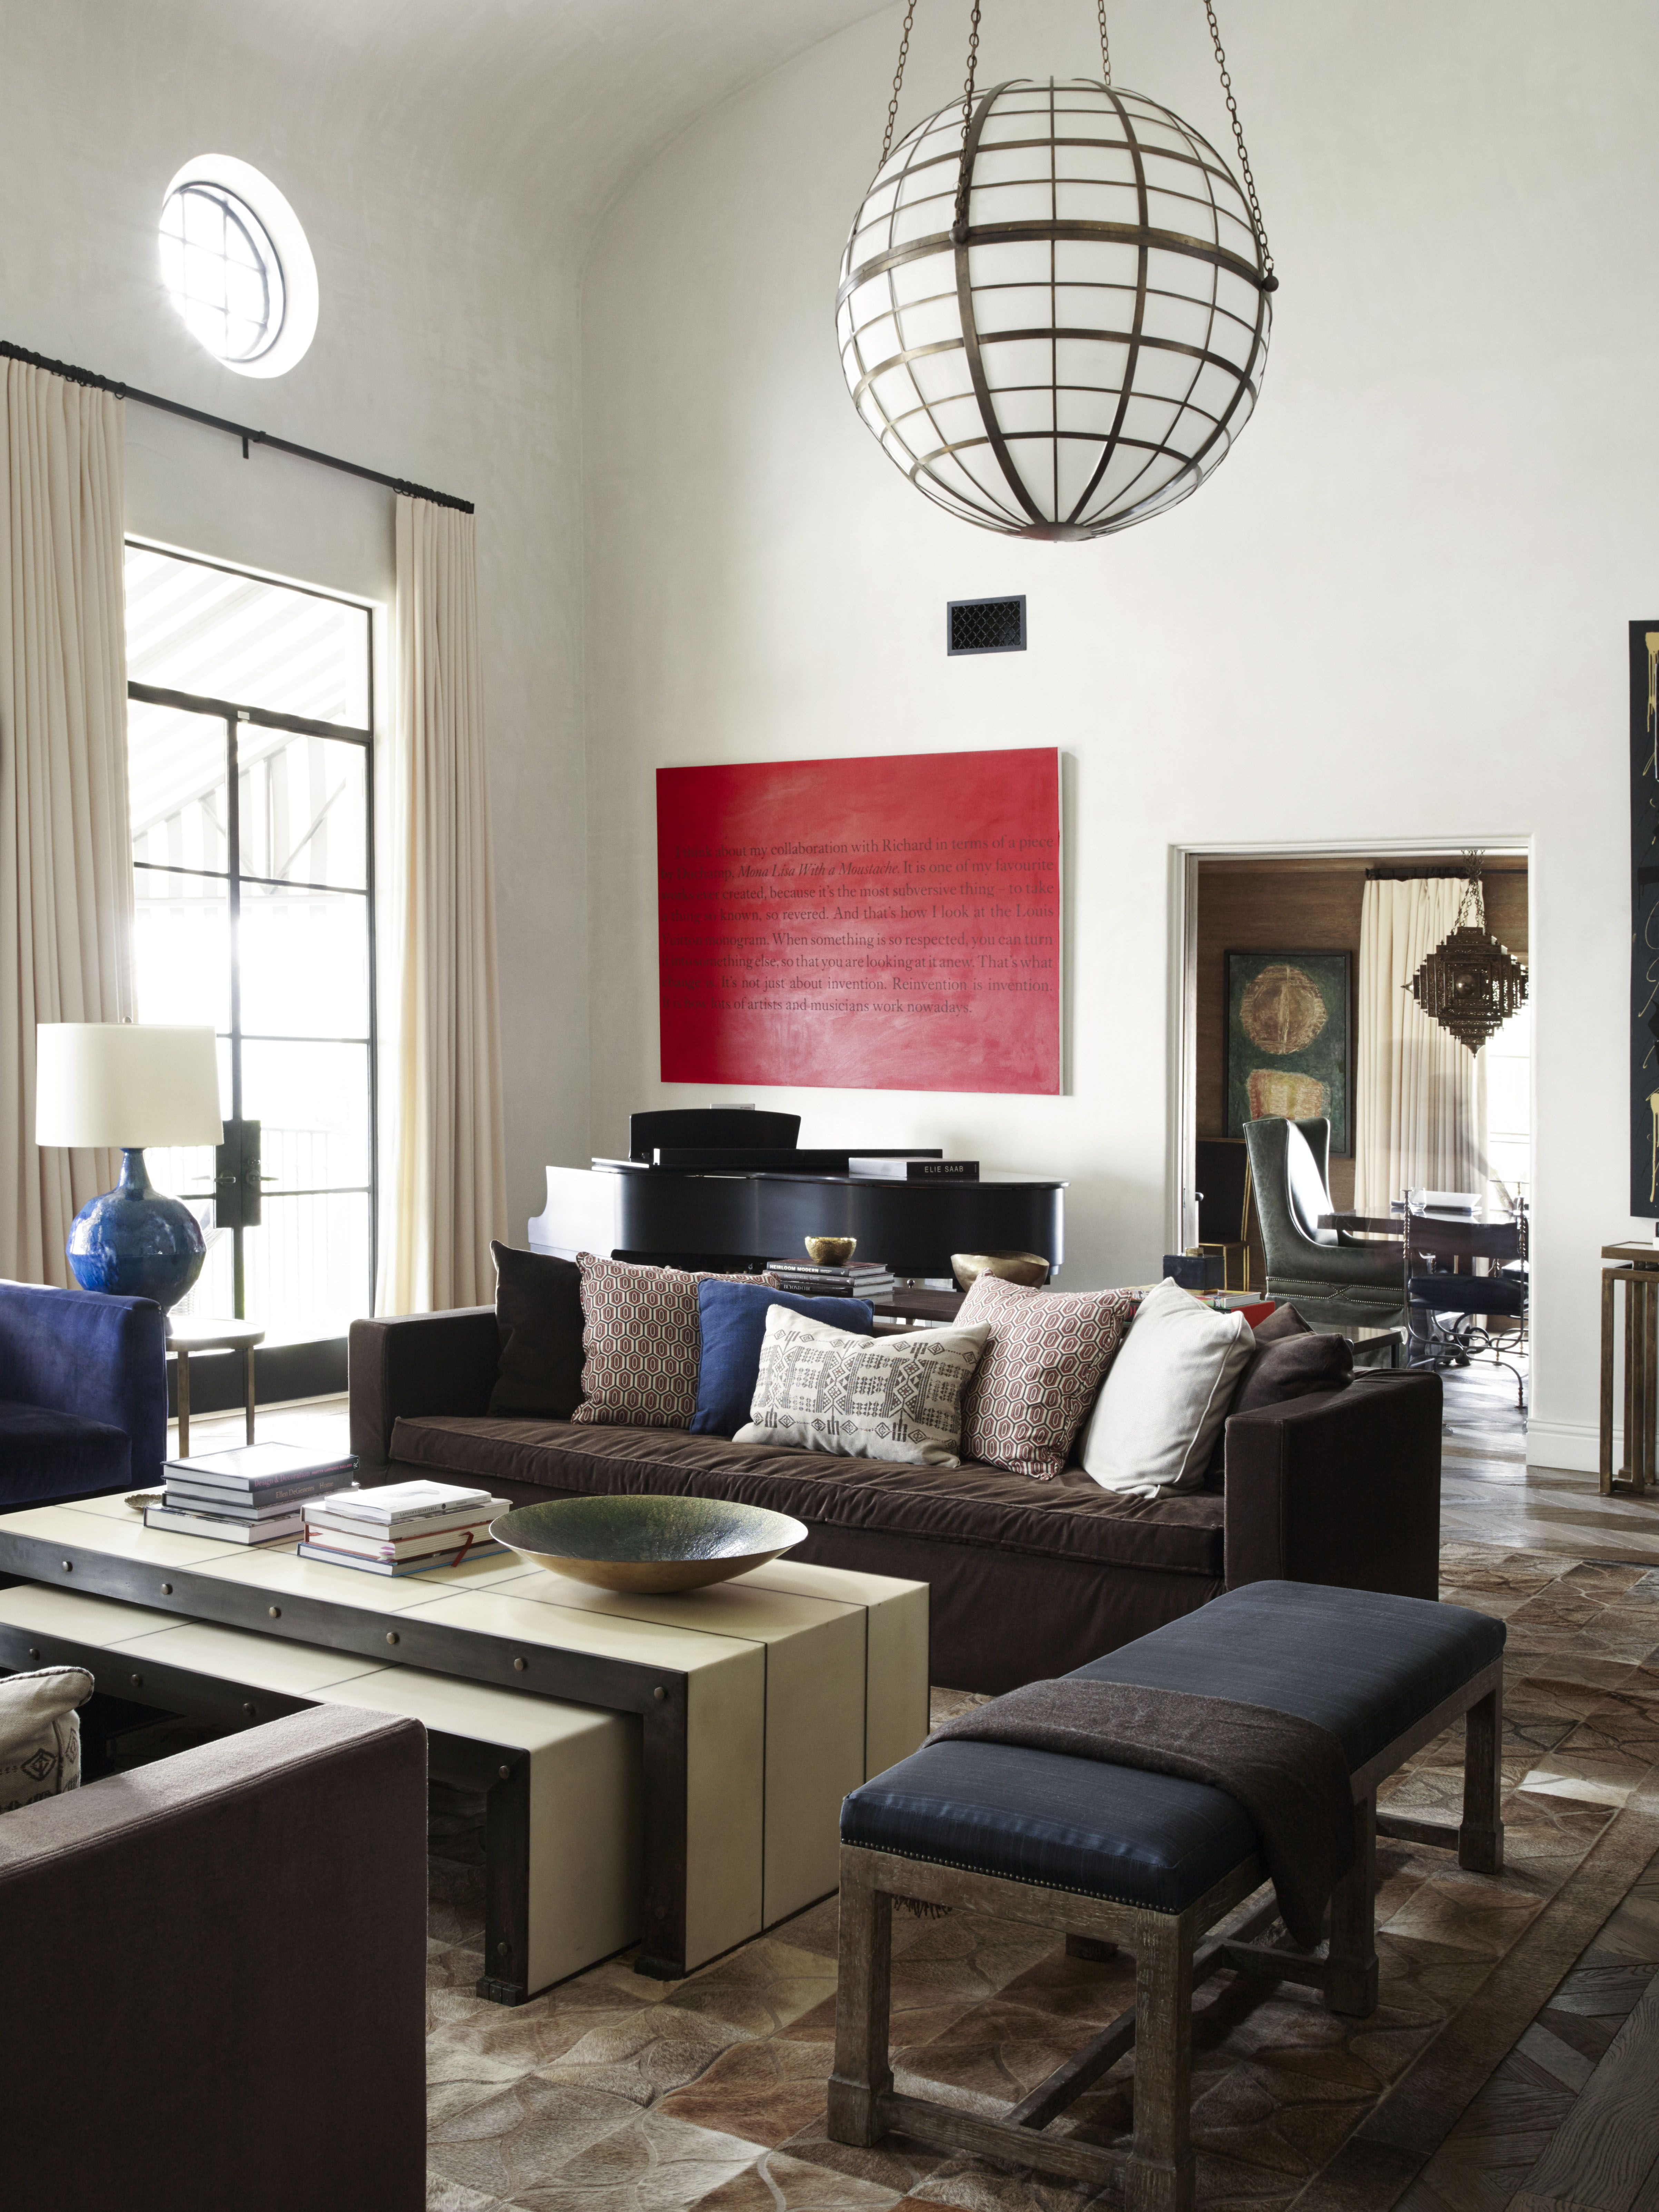 53 Best Living Room Ideas Stylish Living Room Decorating in 14 Awesome Concepts of How to Craft How To Set Up A Living Room